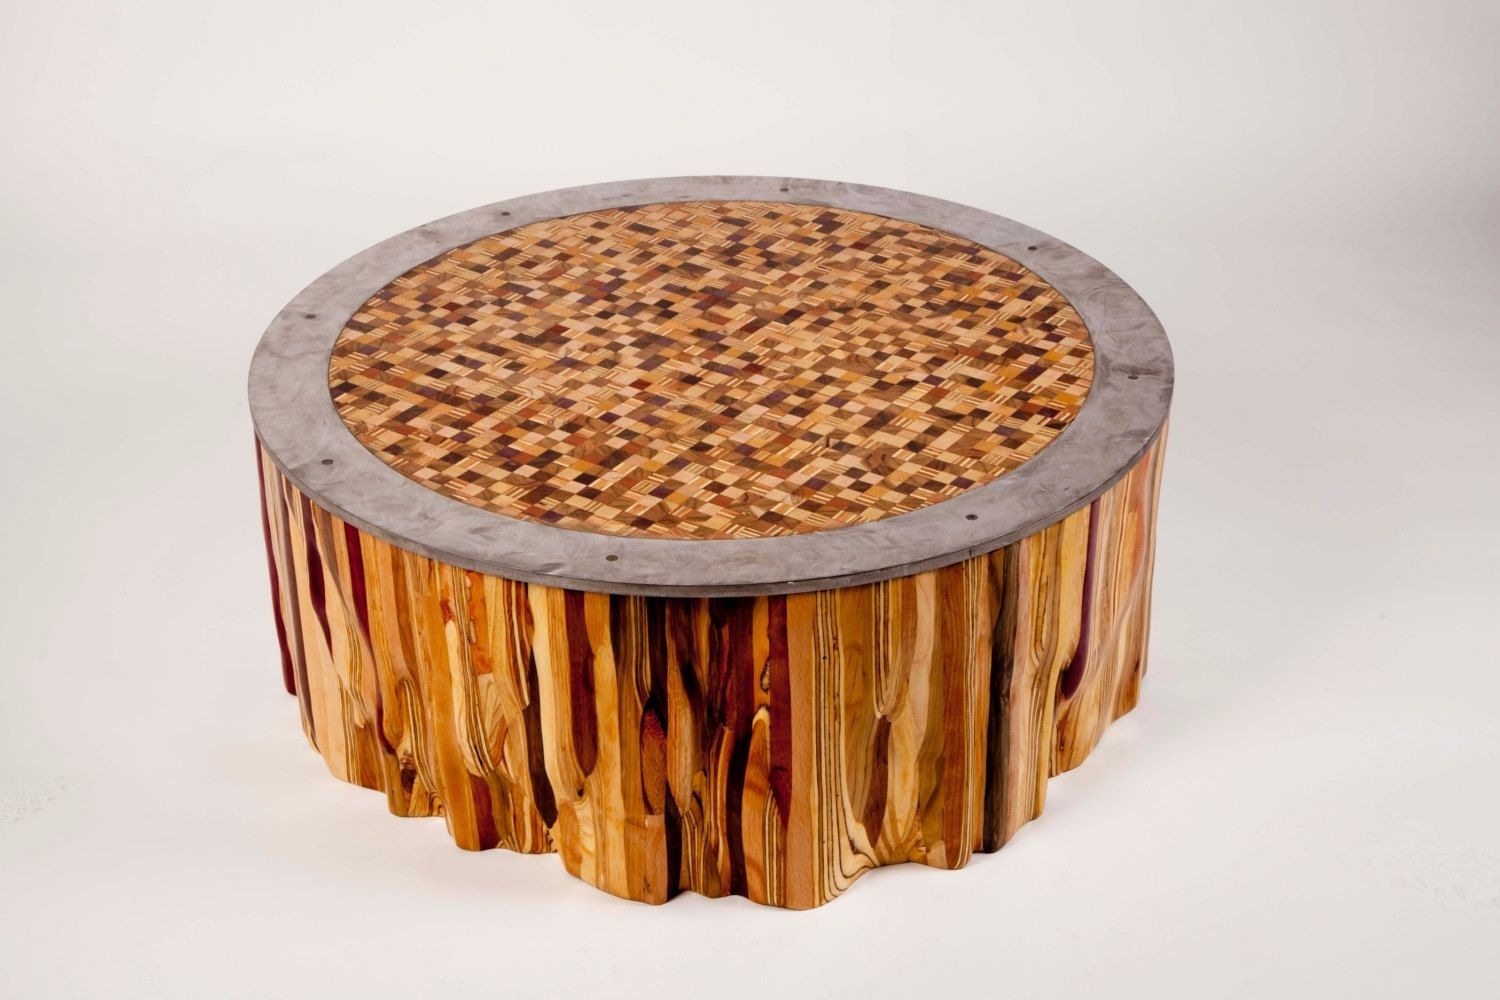 Mixed Wood Mosaic End Grain Top Coffee Table